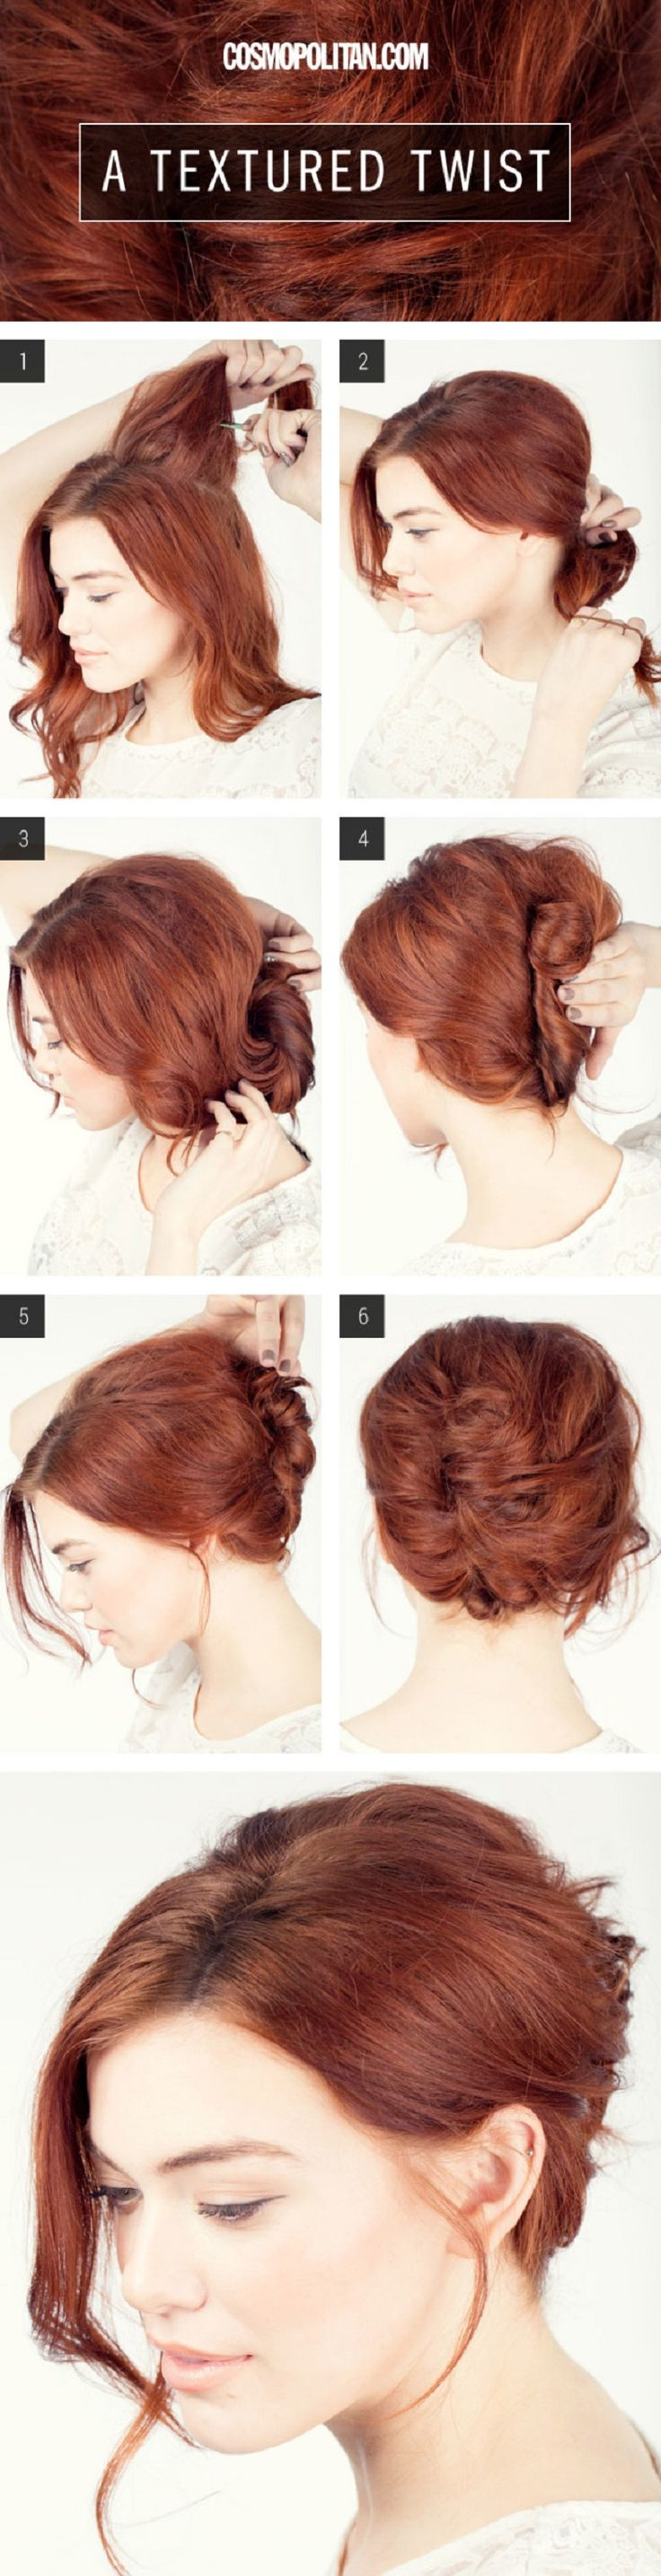 best hair styles to try images on pinterest cute hairstyles